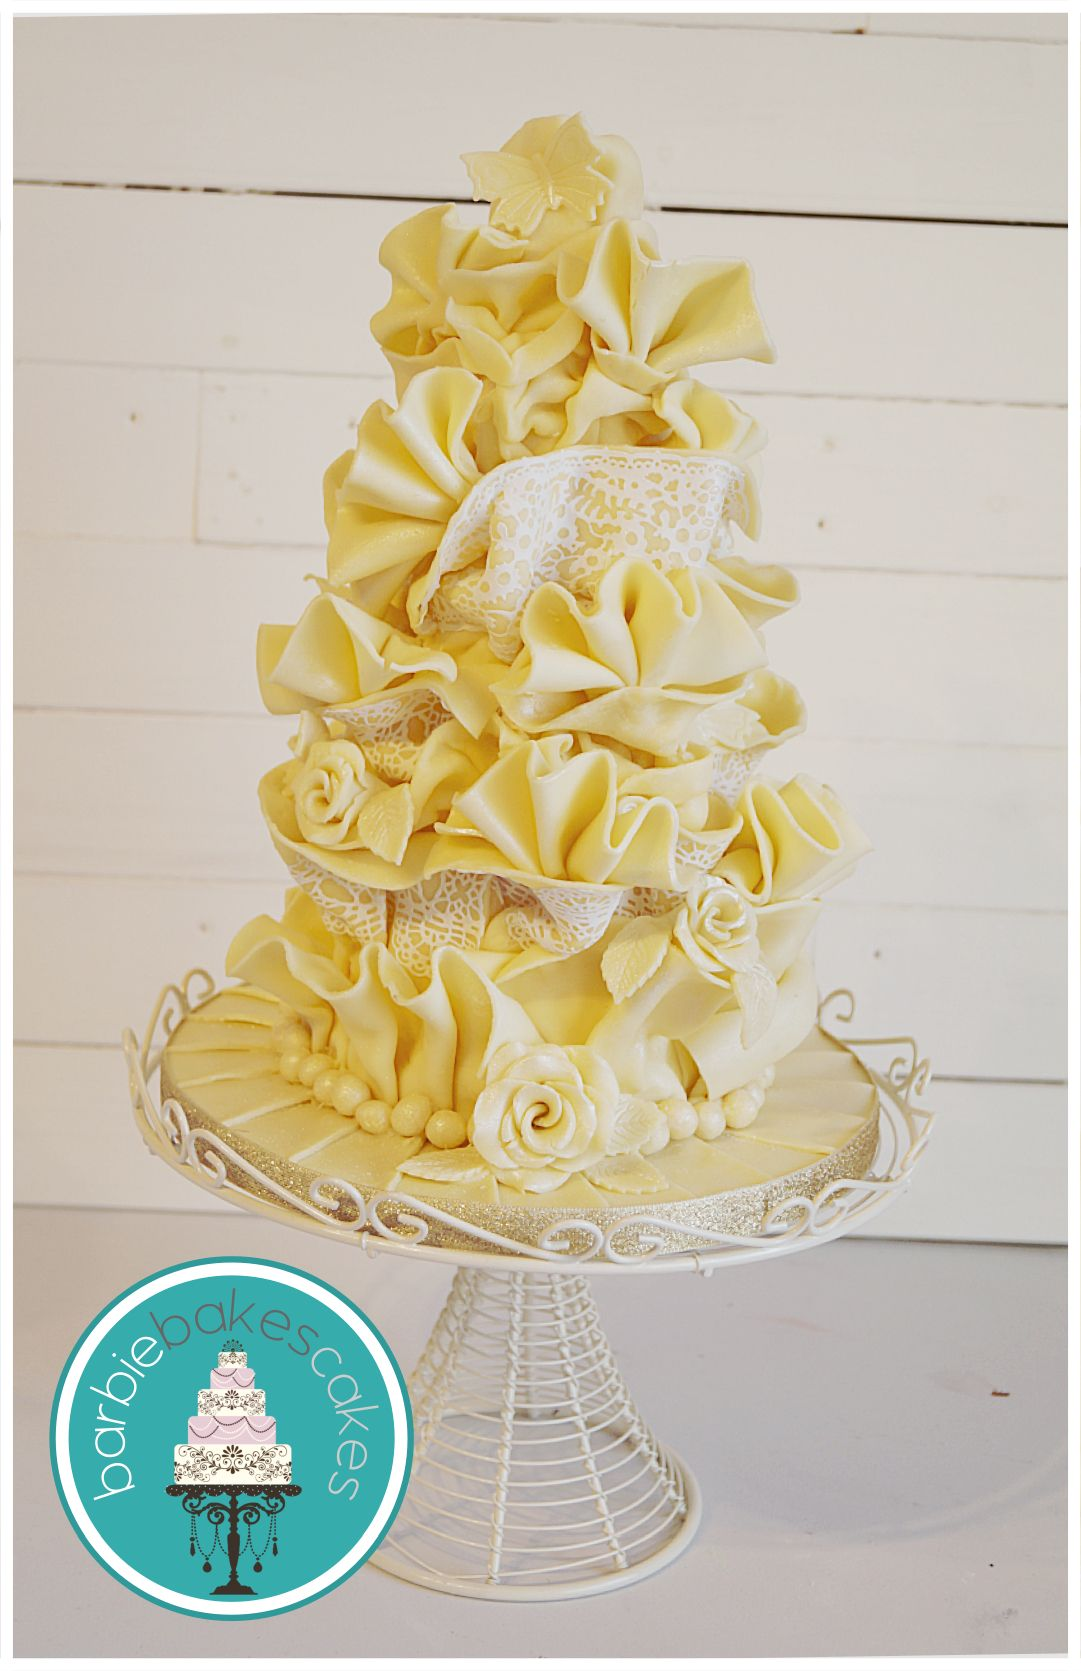 White chocolate wrap wedding cake Barbie Bakes Cakes web: www ...